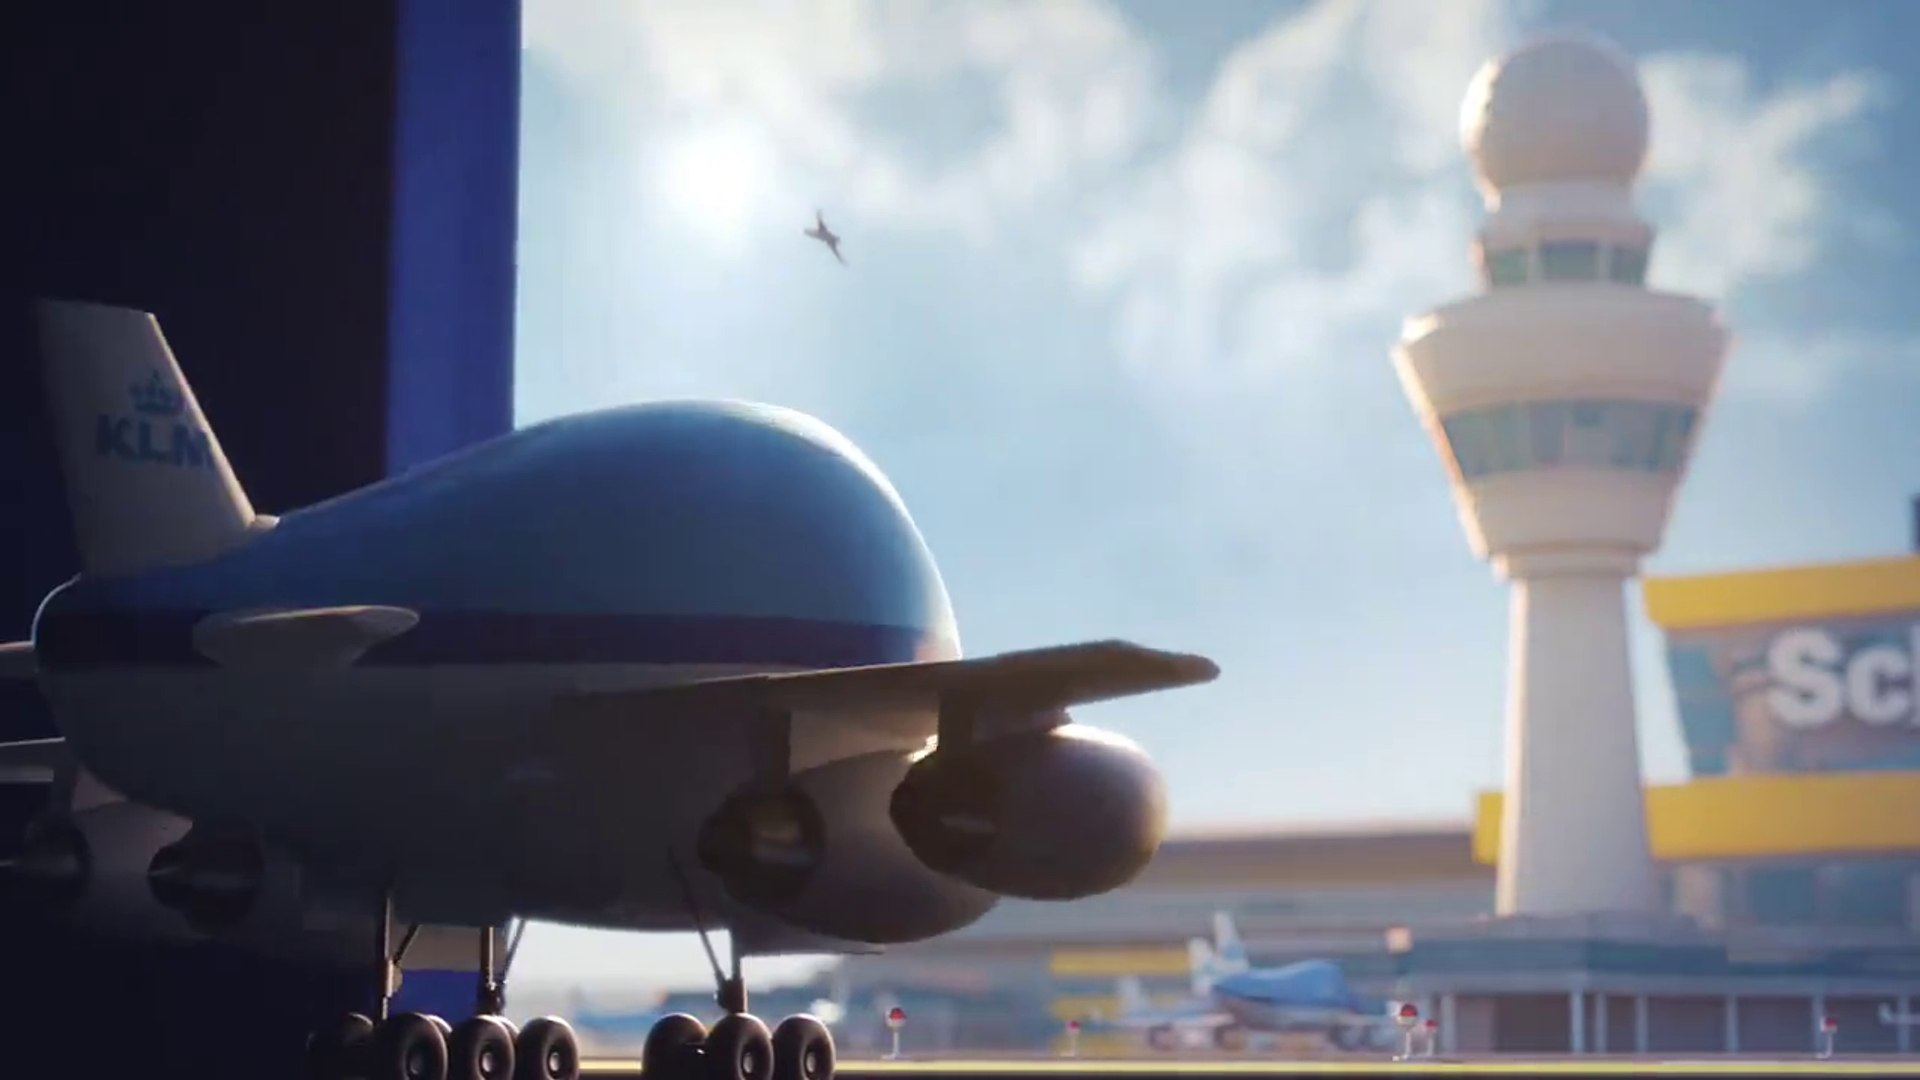 KLM Royal Dutch Airlines - Adventures of the Bluey  little KLM 747